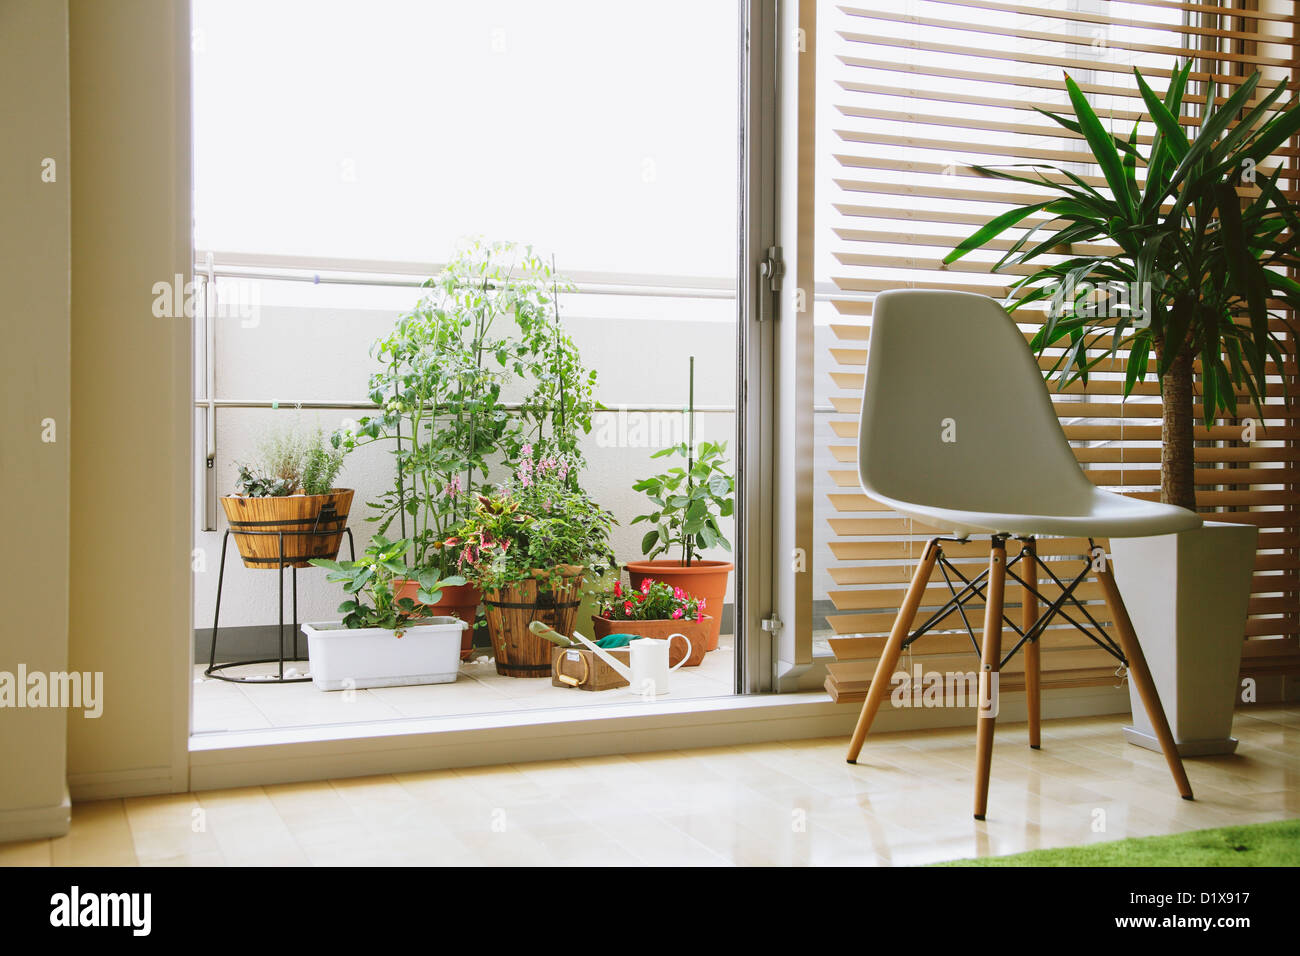 Potted plants on a balcony seen from the living room - Stock Image